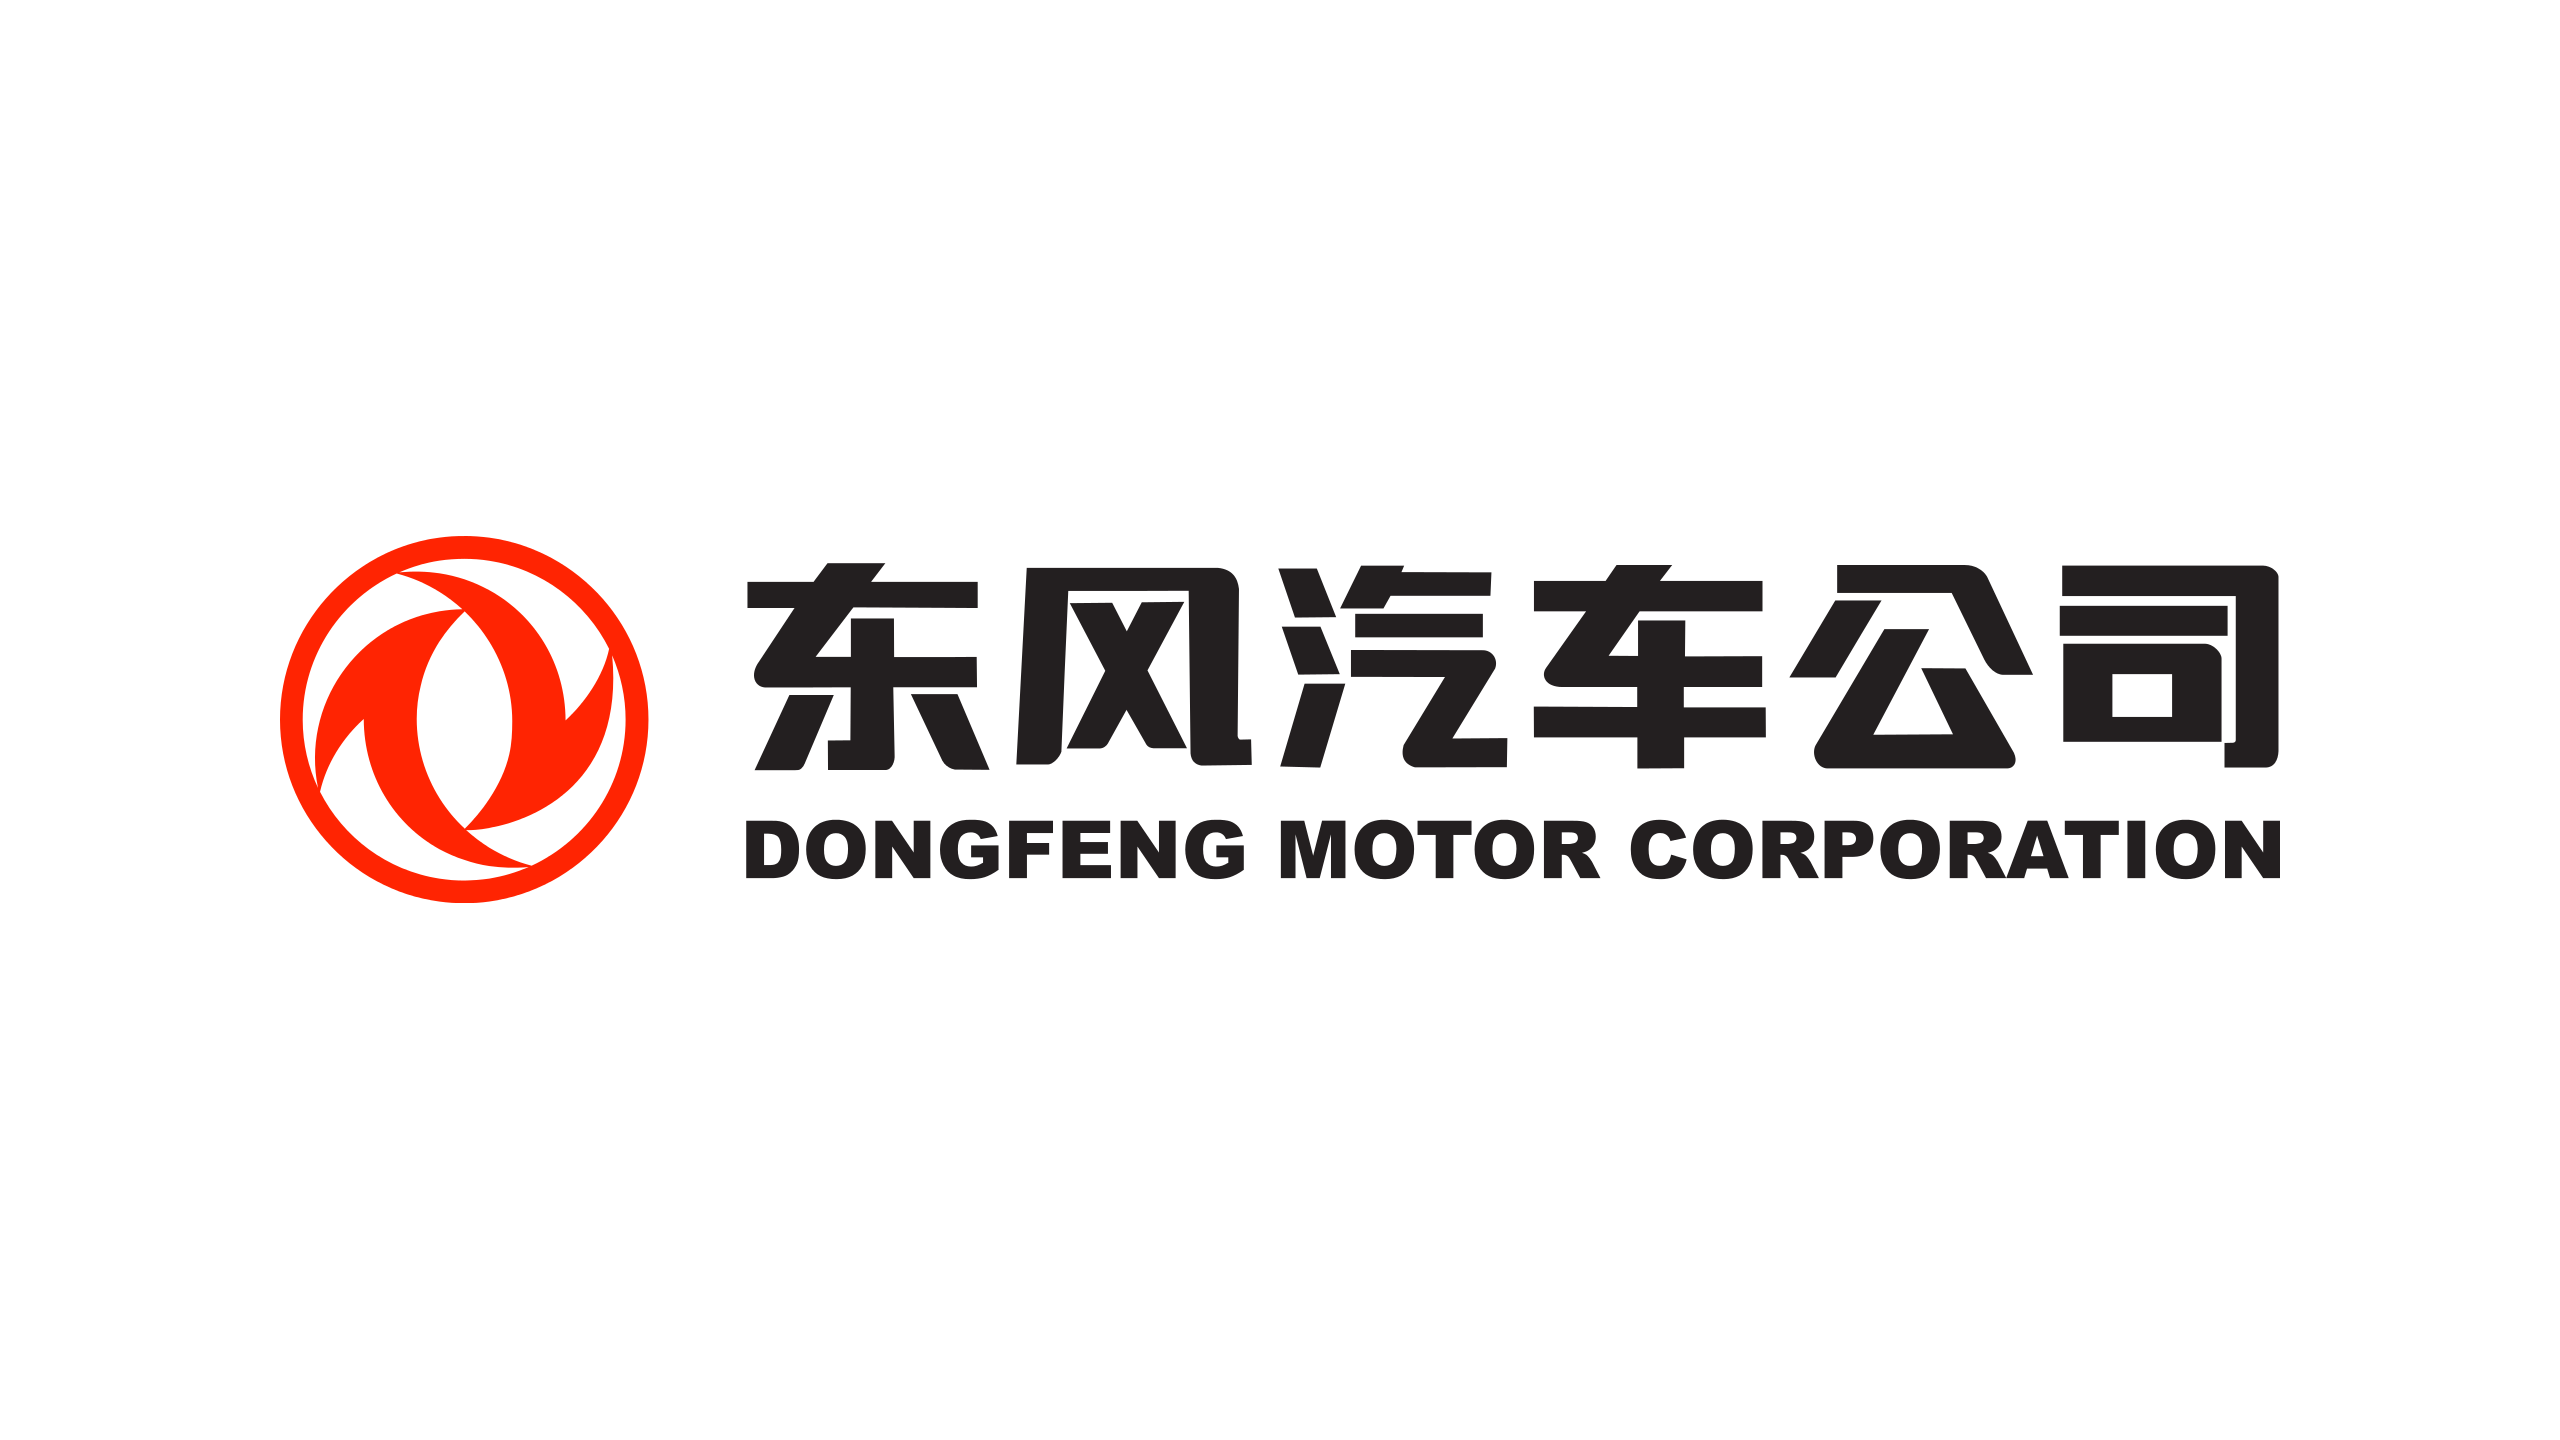 dongfeng logo  hd png  meaning  information